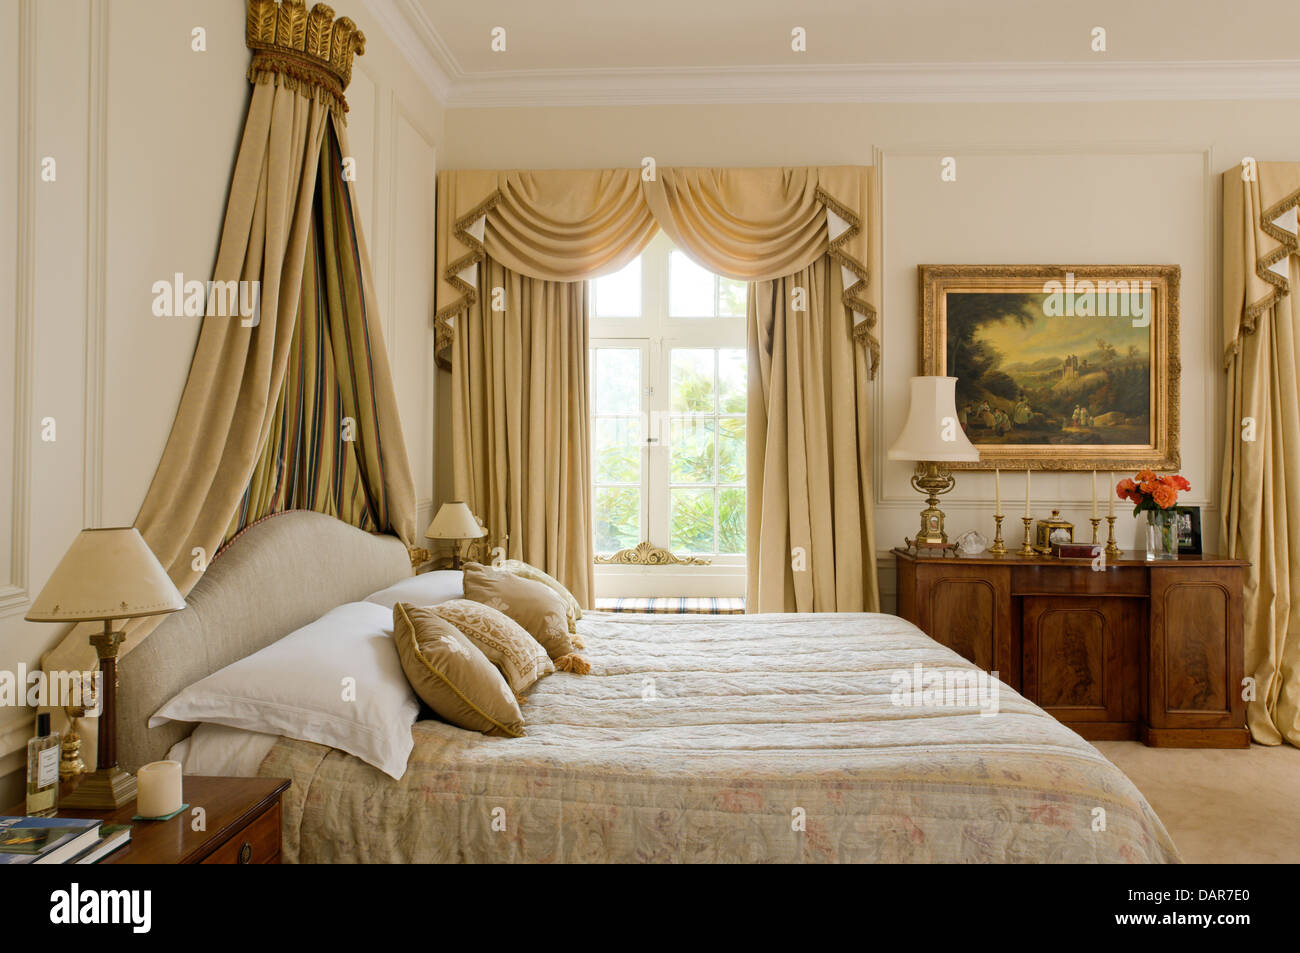 Exceptionnel Bed With Gilt Coronet In Bedroom With Full Length Pale Gold Curtains,  Ampney Park,